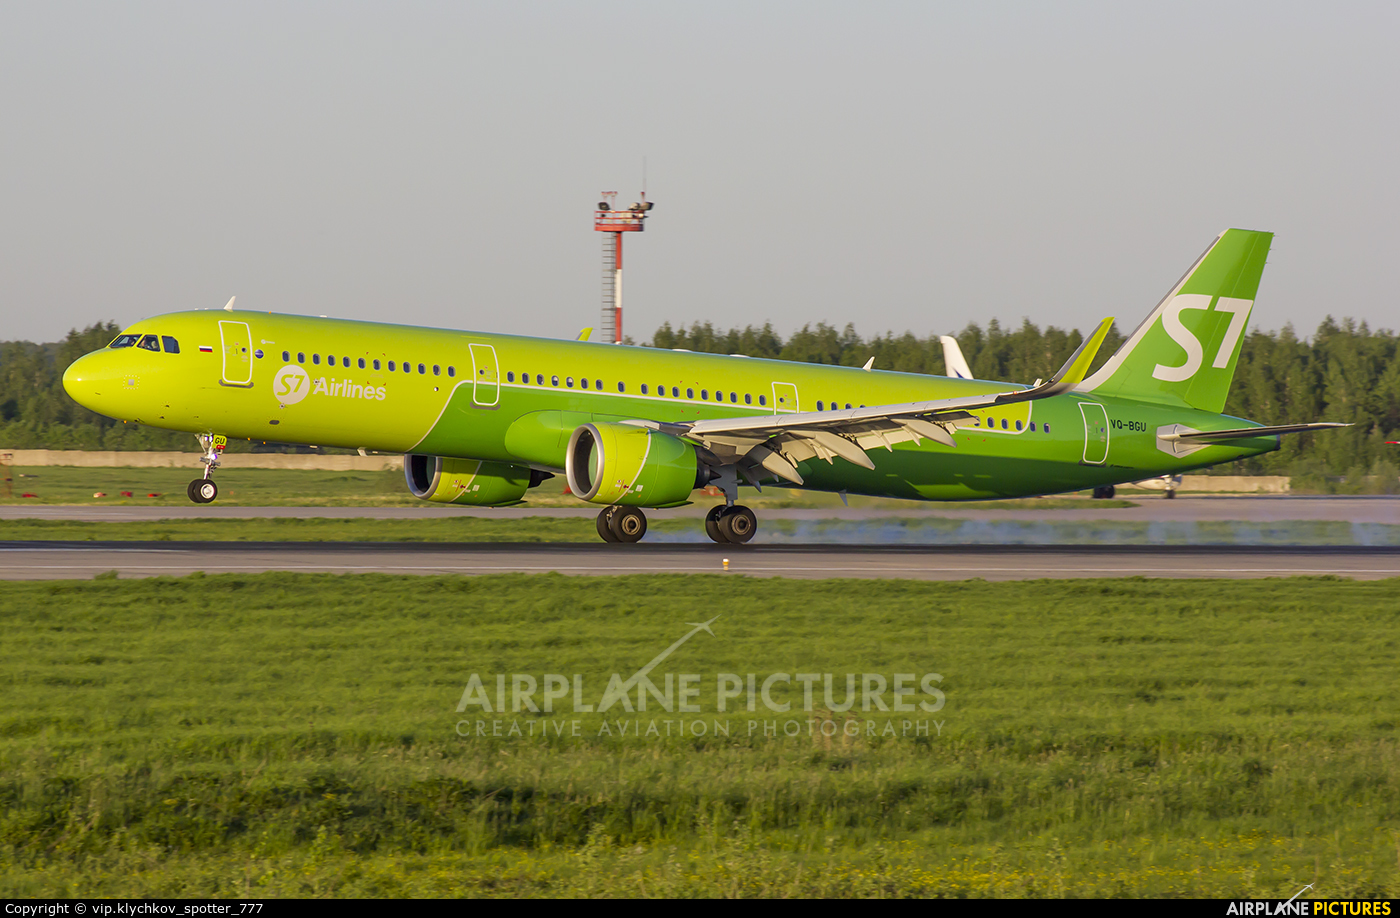 S7 Airlines VQ-BGU aircraft at Moscow - Domodedovo